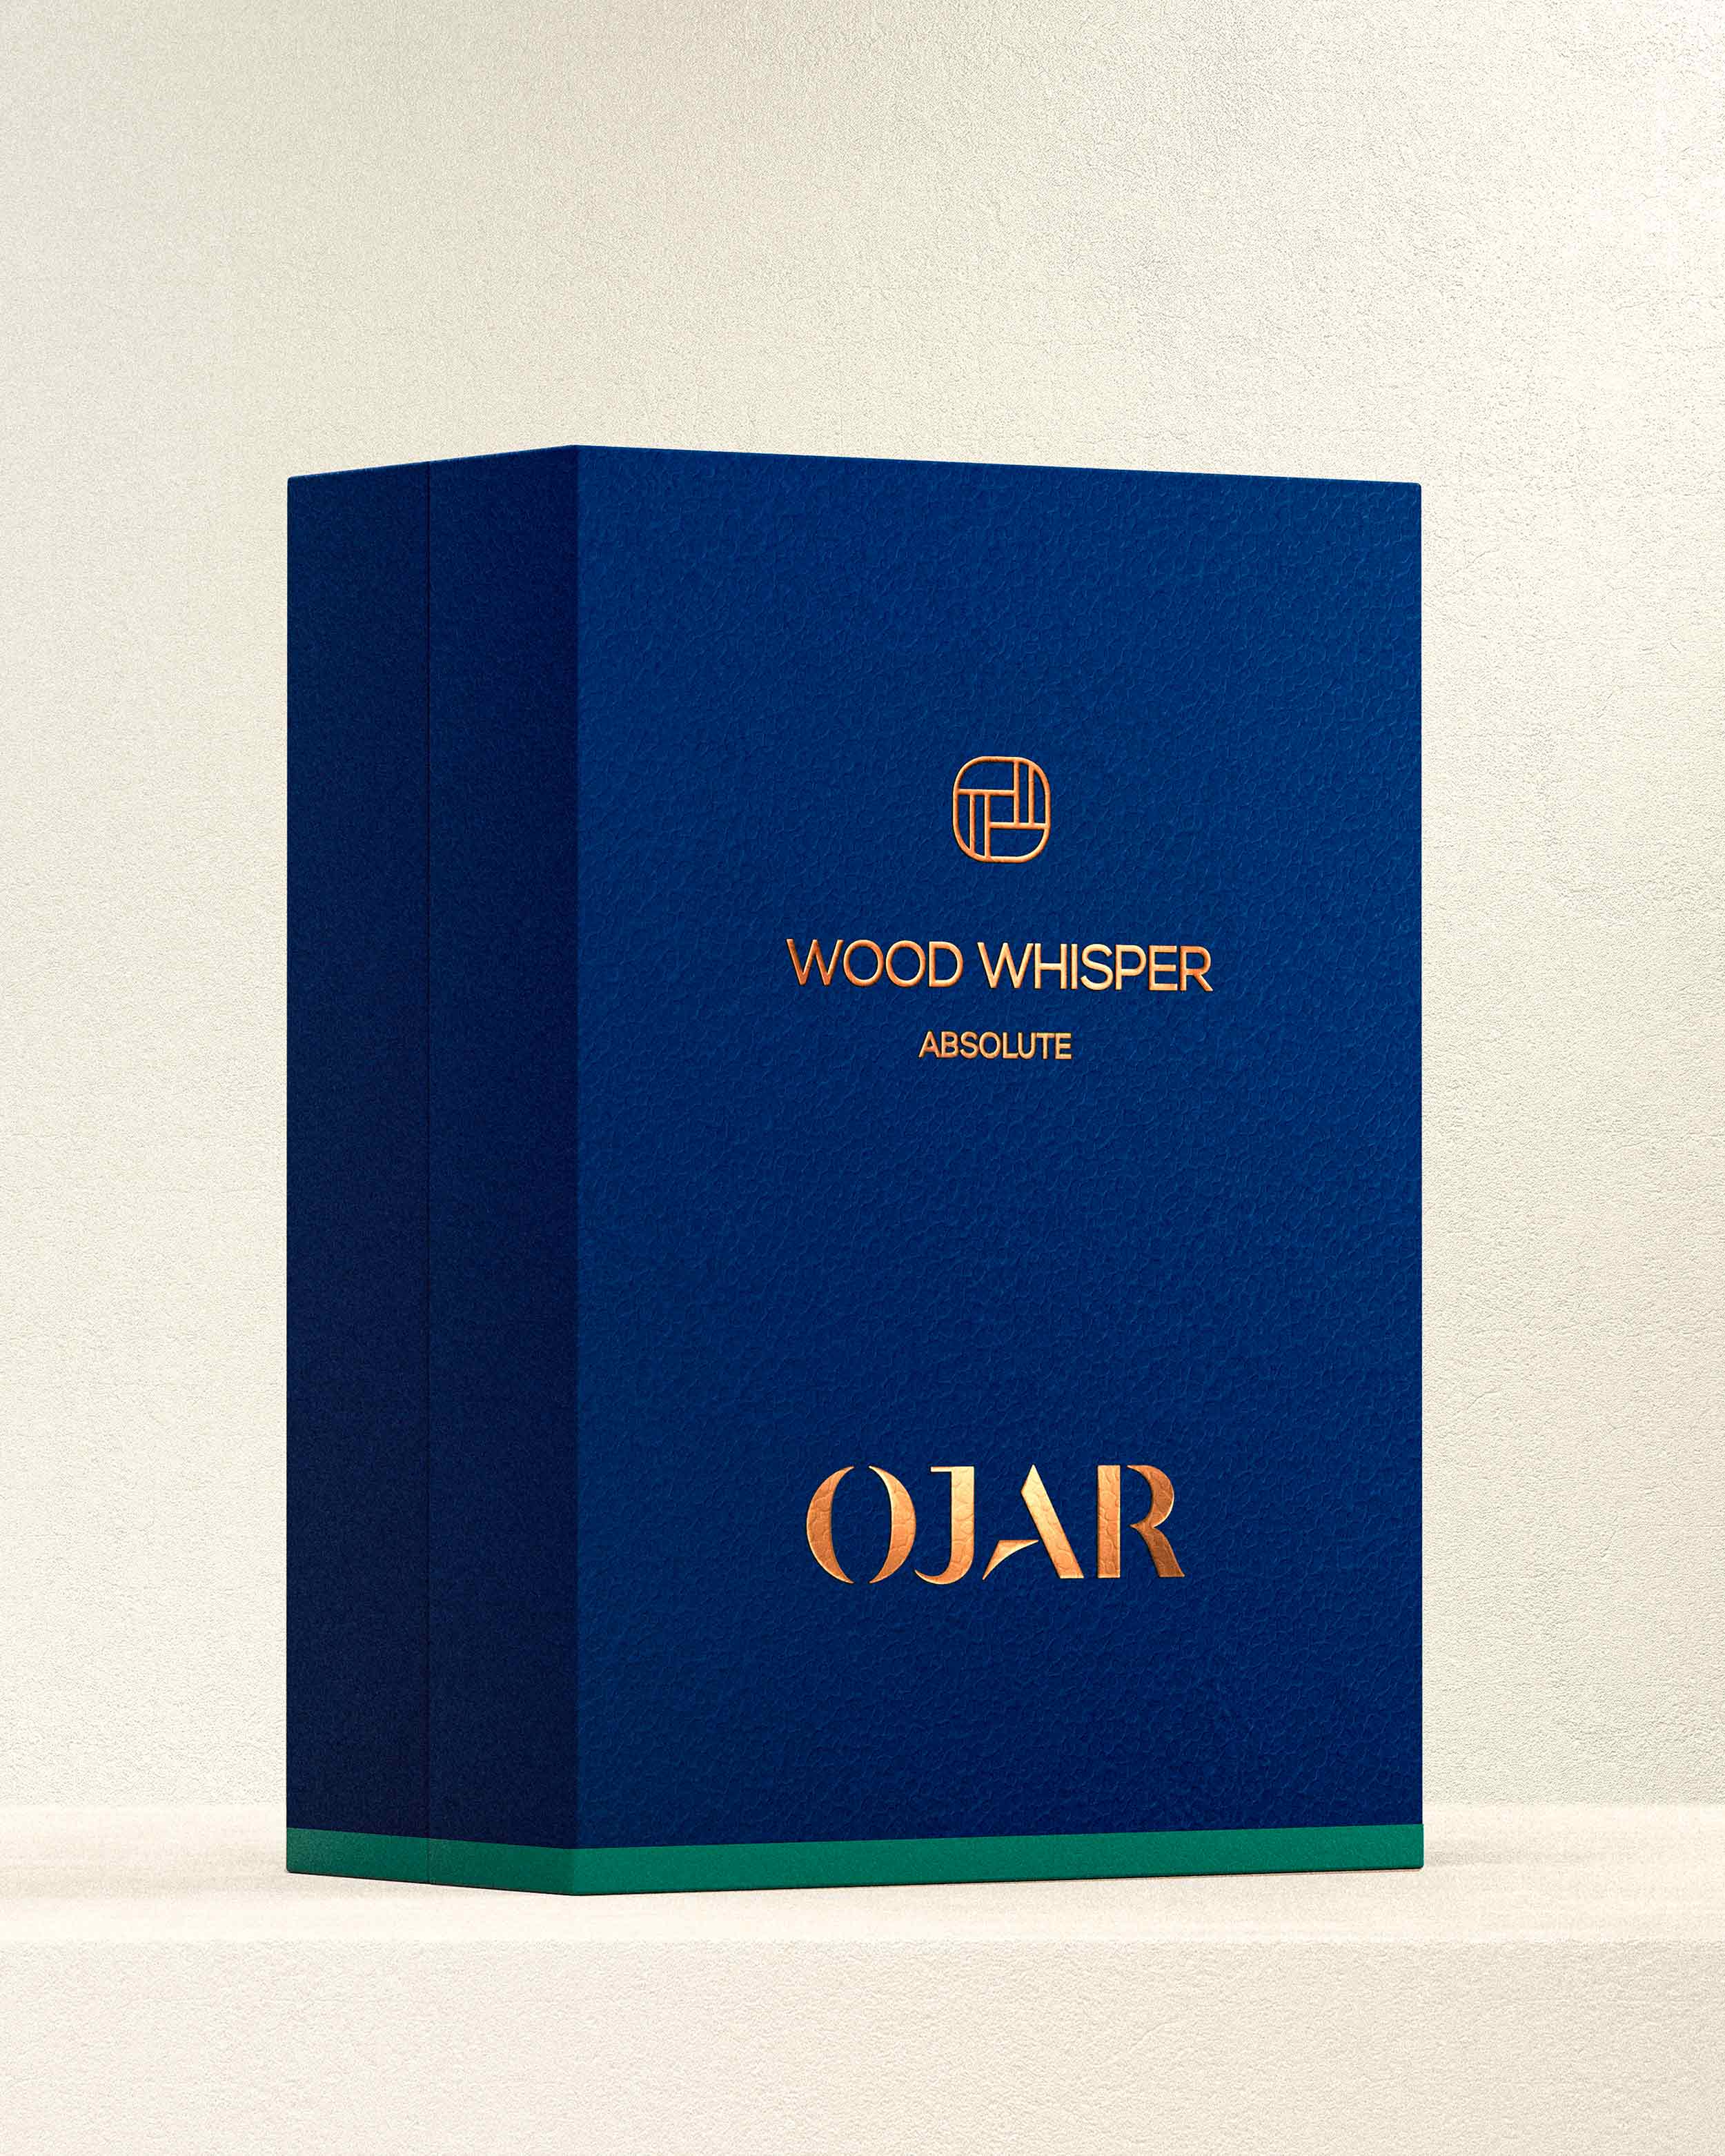 OJAR Absolute Wood Whisper Perfume Pack